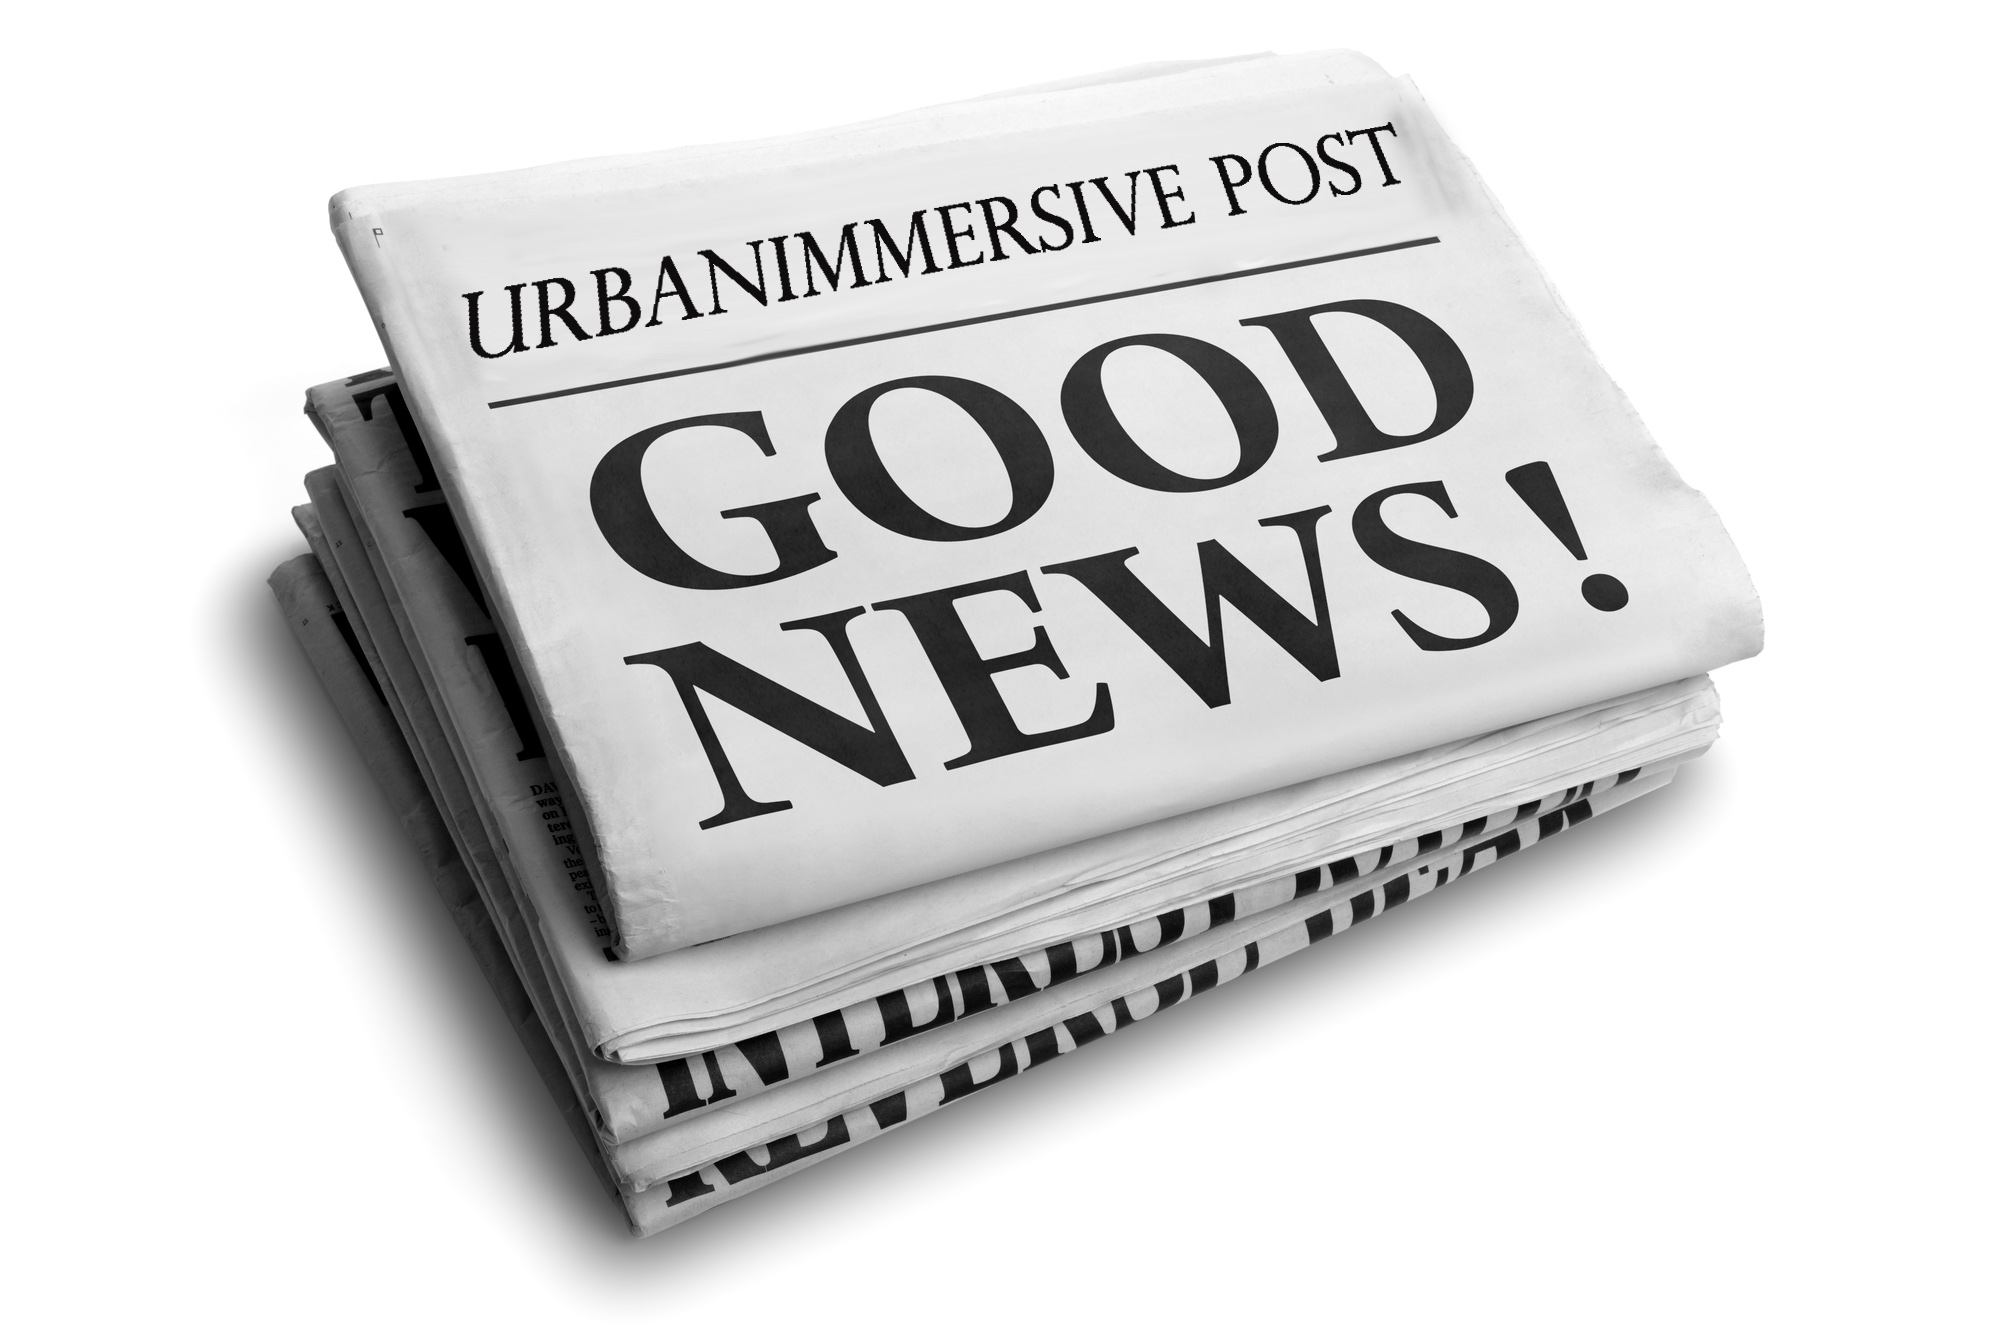 Urbanimmersive Adds Three New Affiliate Vendors to its Platform for All Customer Transactions